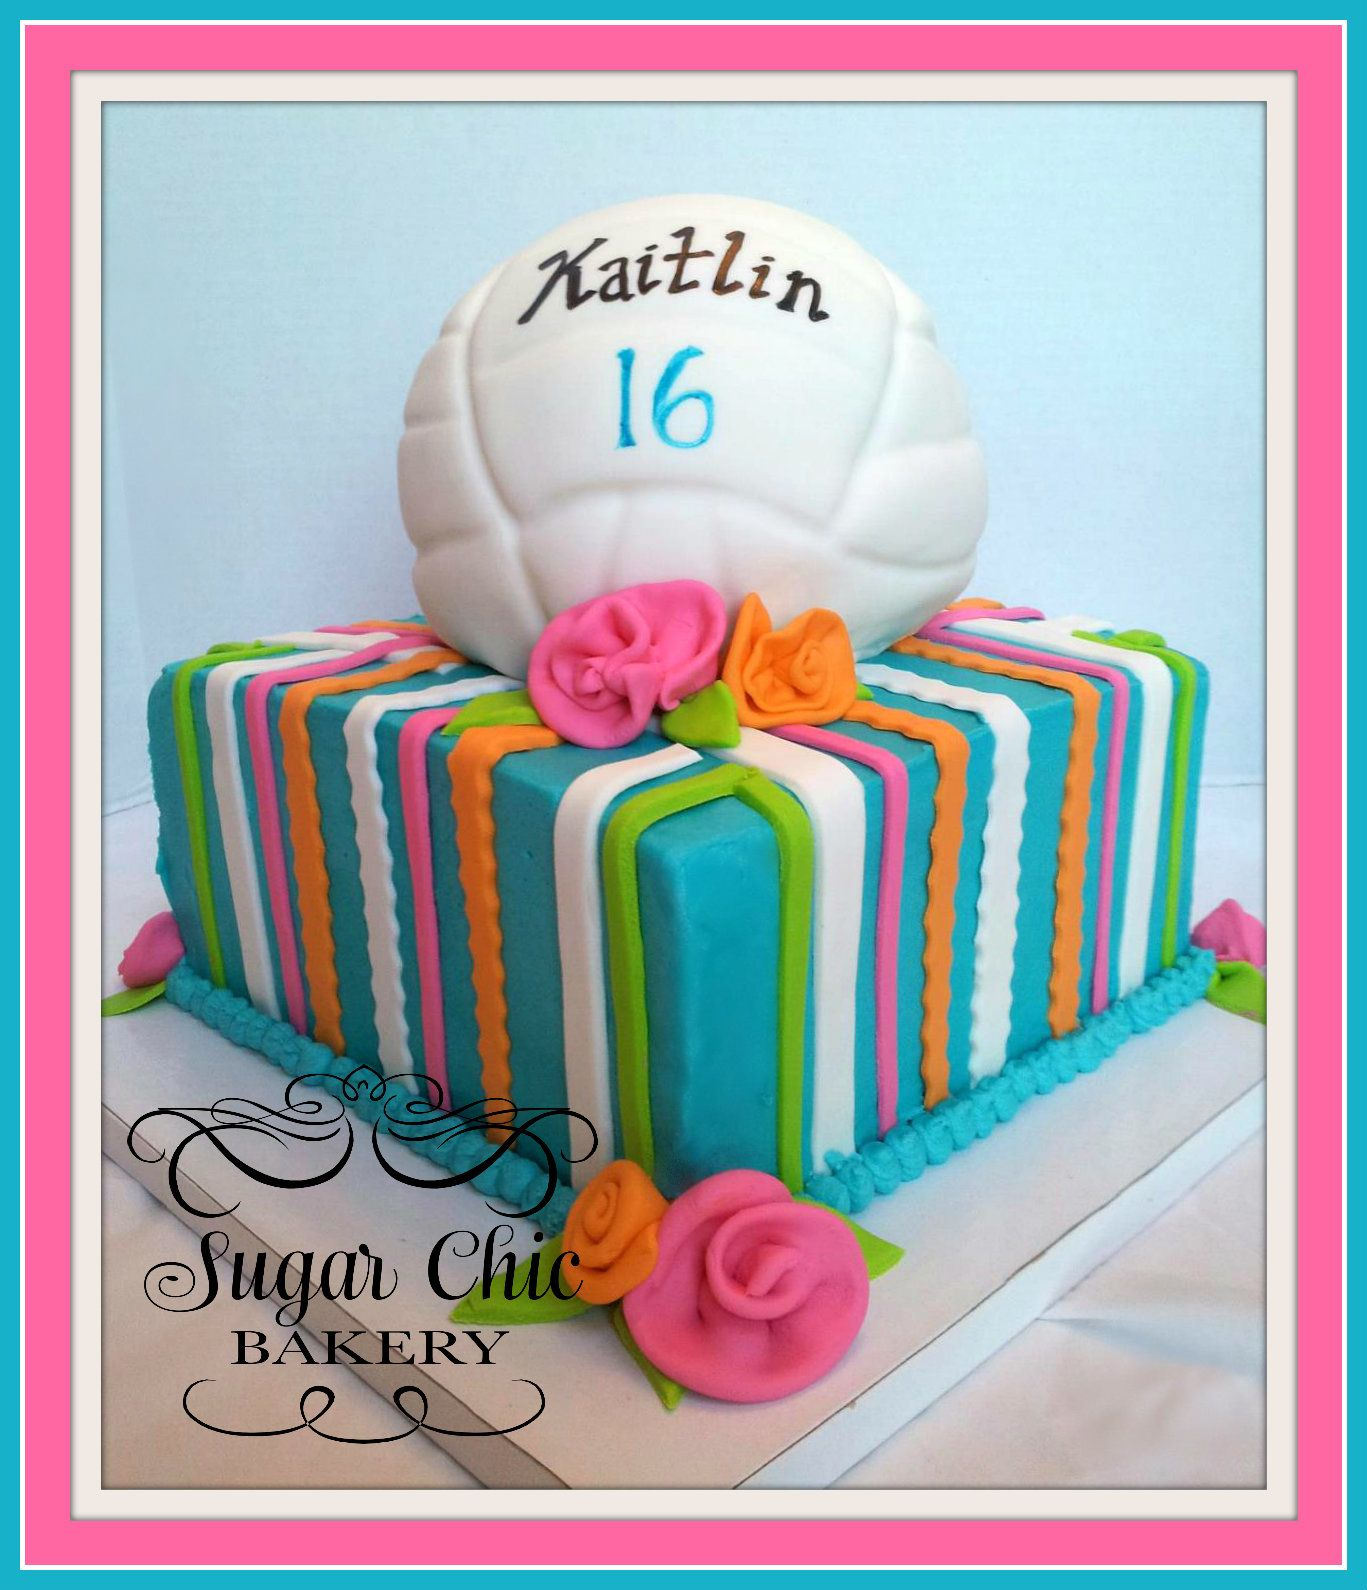 Volleyball 8 Inch Butter Cream With Fondant Volleyball Volleyball Cakes Volleyball Birthday Cakes Birthday Cakes For Teens